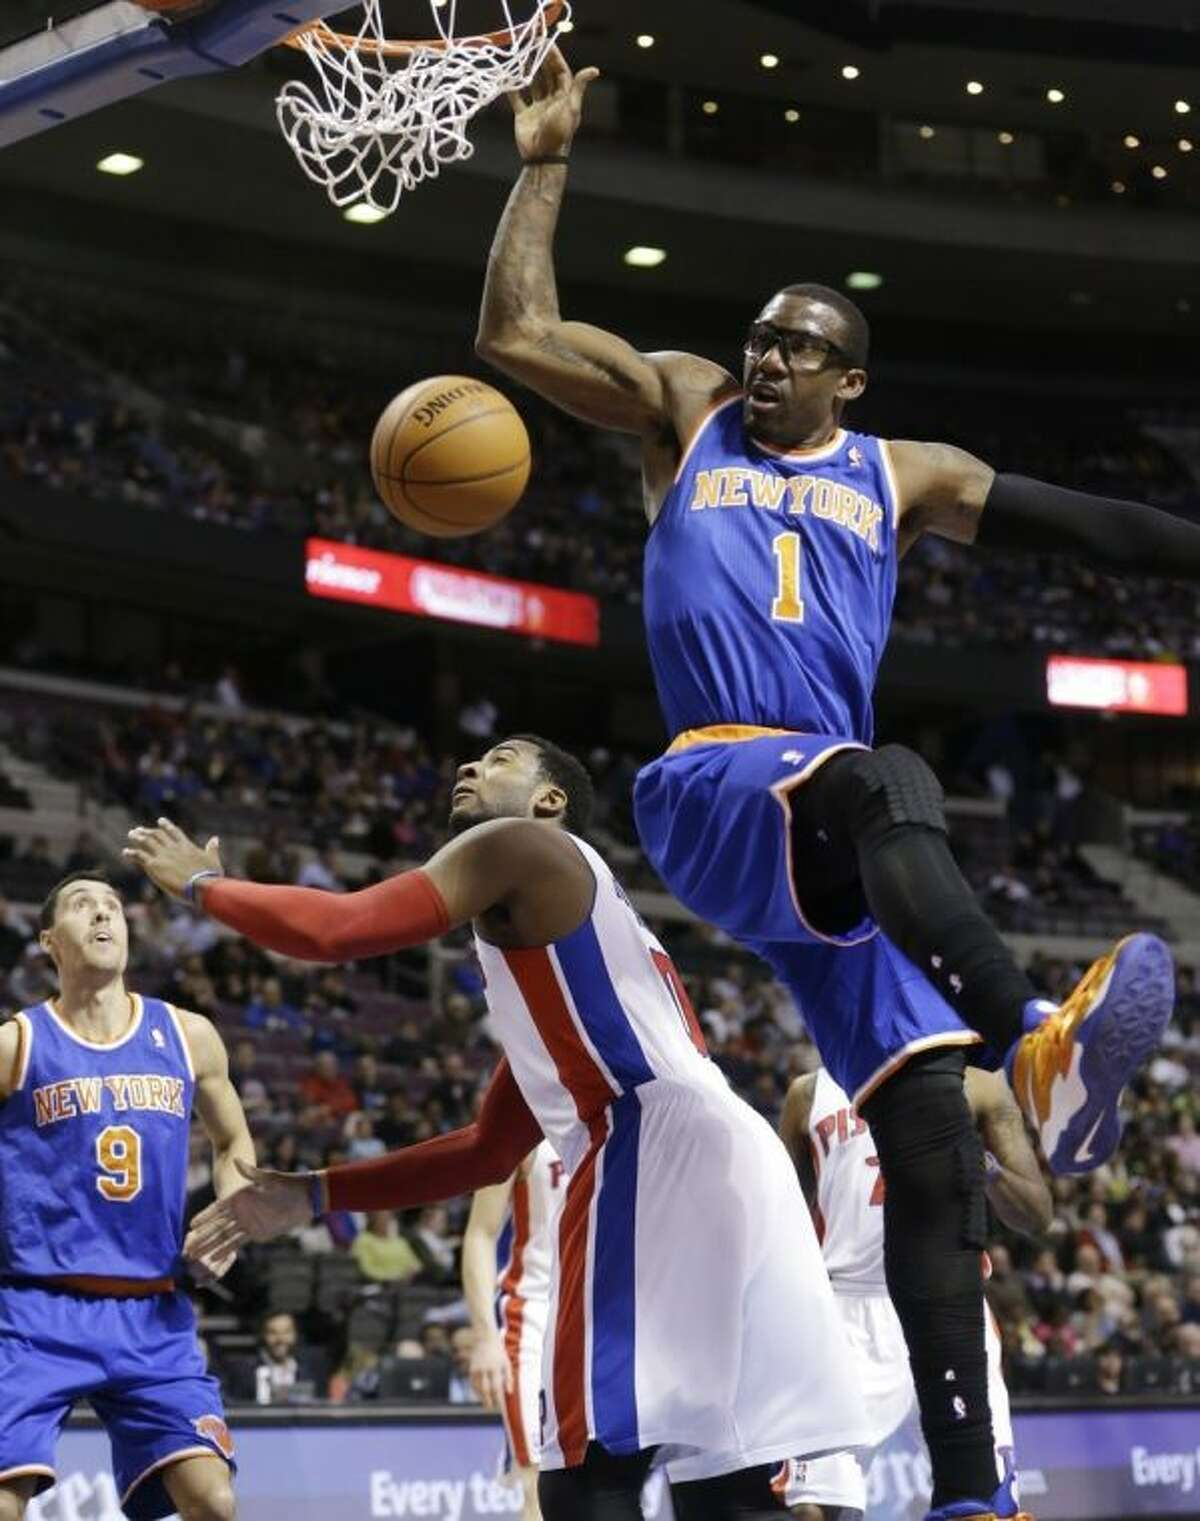 New York Knicks forward Amar'e Stoudemire (1) dunks on Detroit Pistons center Andre Drummond (0) during the first half of an NBA basketball game in Auburn Hills, Mich., Monday, March 3, 2014. (AP Photo/Carlos Osorio)